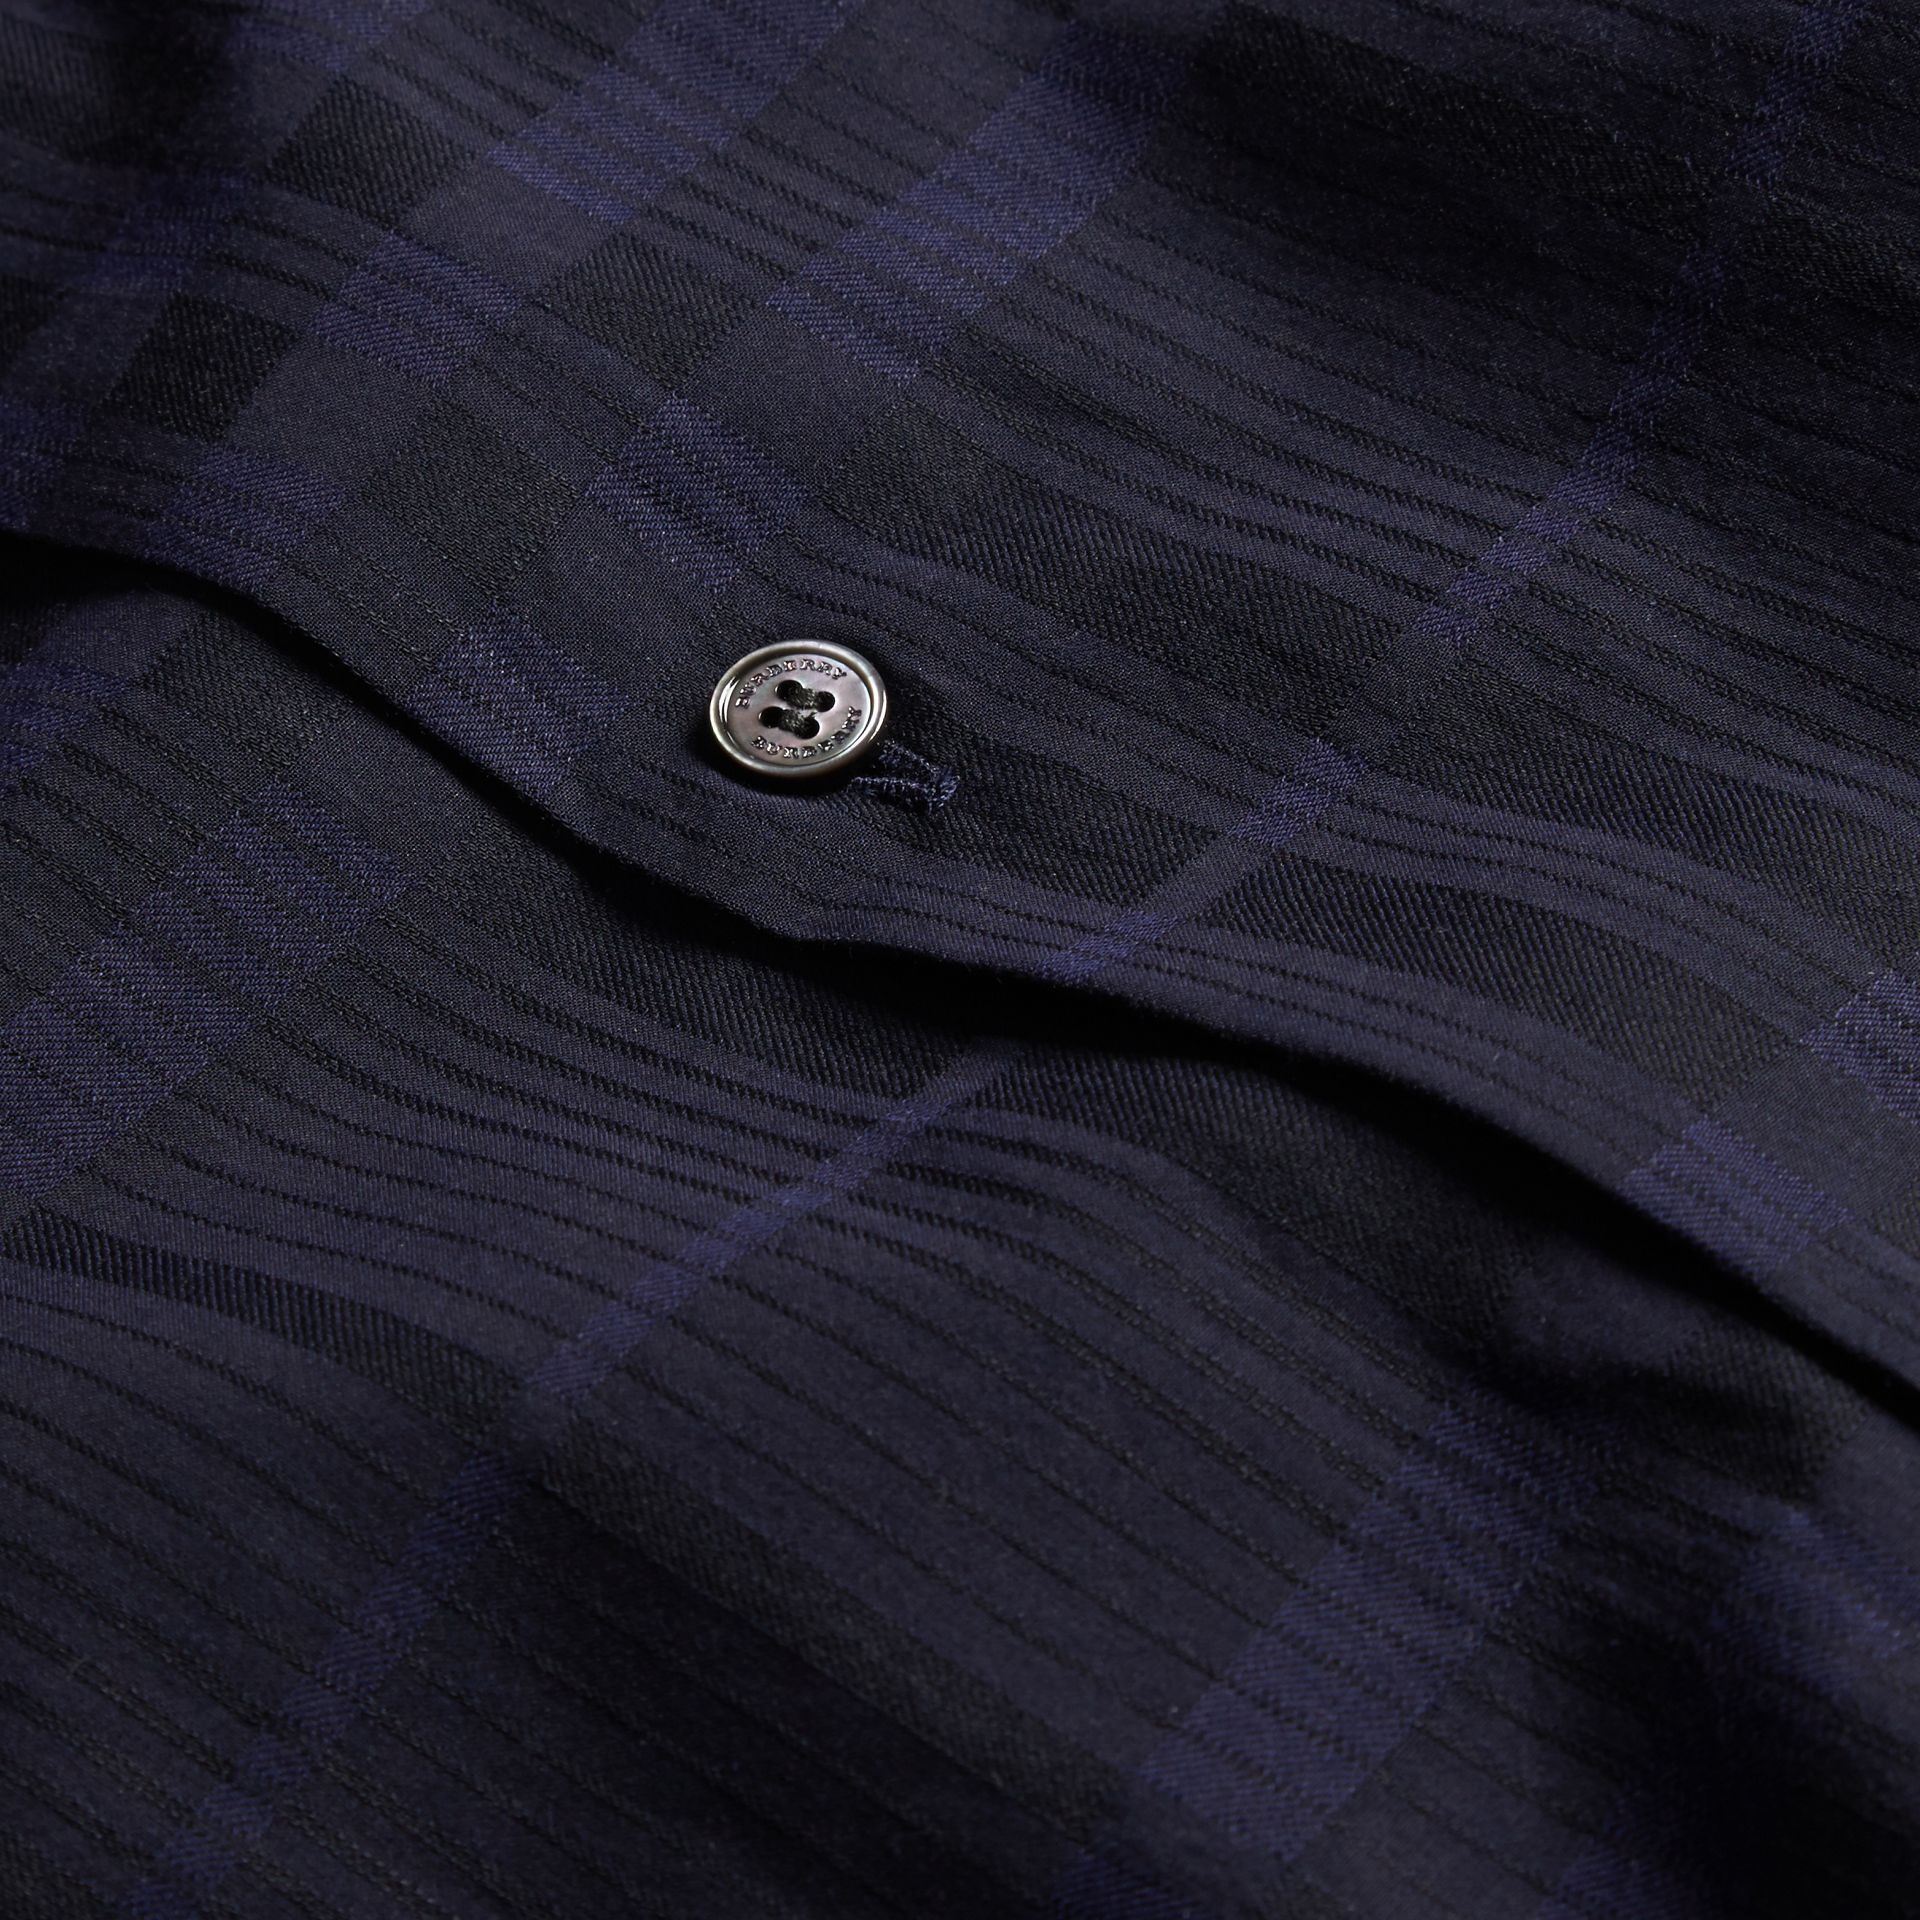 Navy Check Jacquard Cotton Shirt Navy - gallery image 2